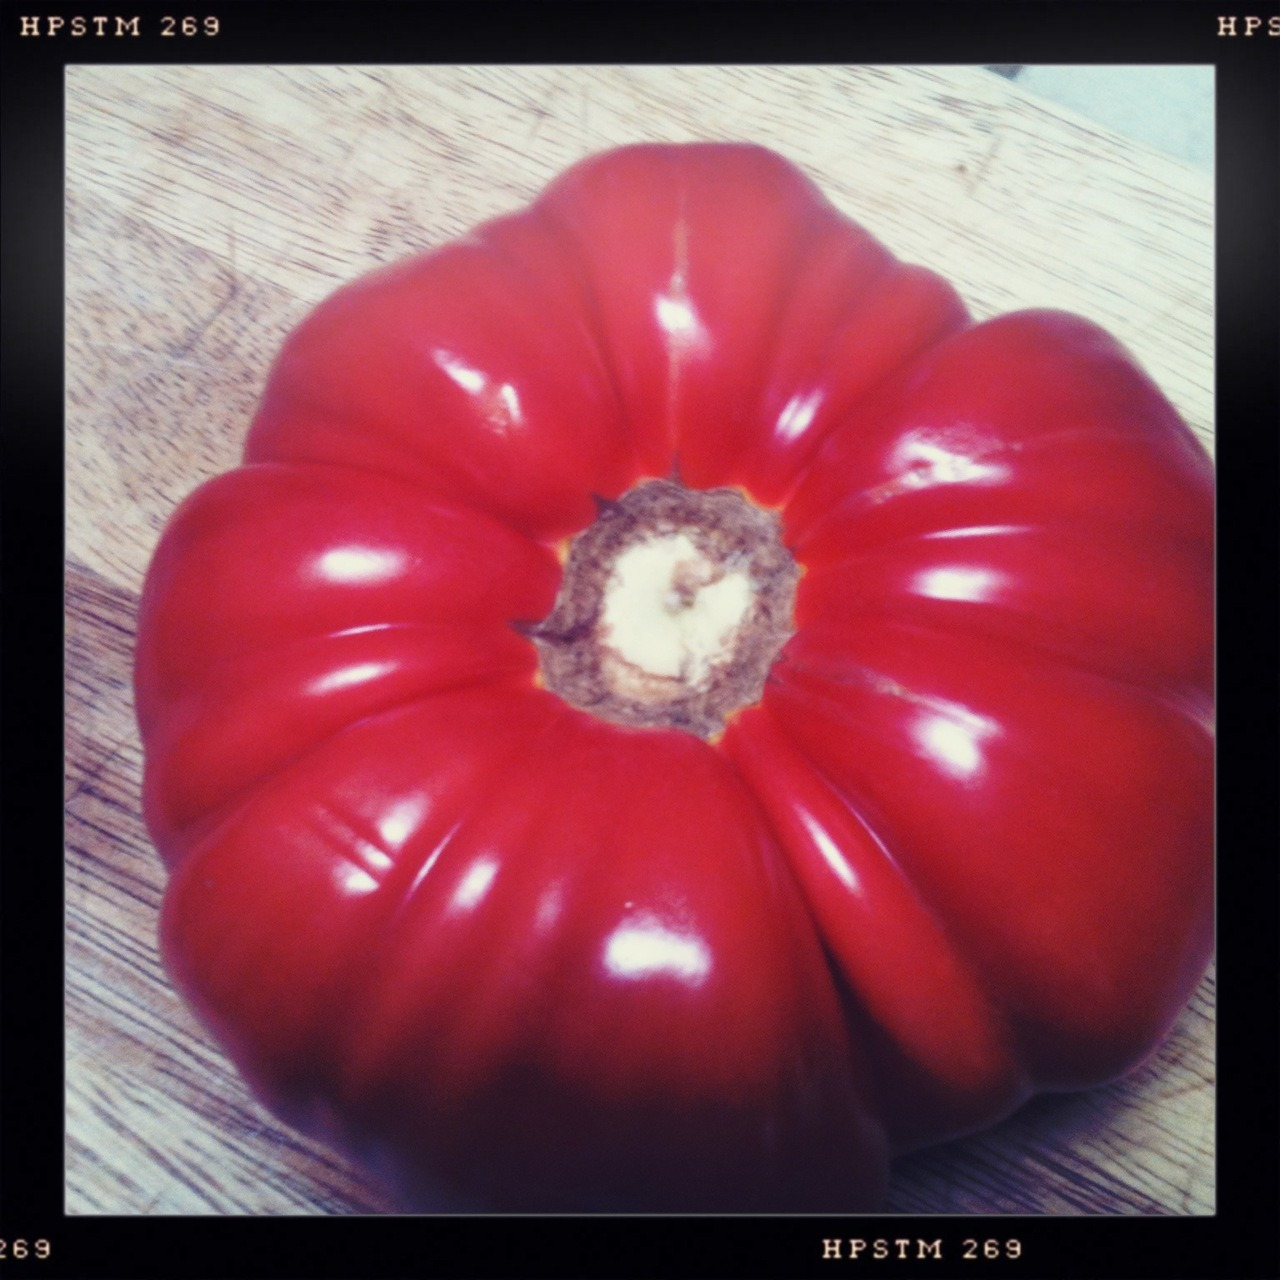 Pretty tomato  Helga Viking Lens, Pistil Film, No Flash, Taken with Hipstamatic